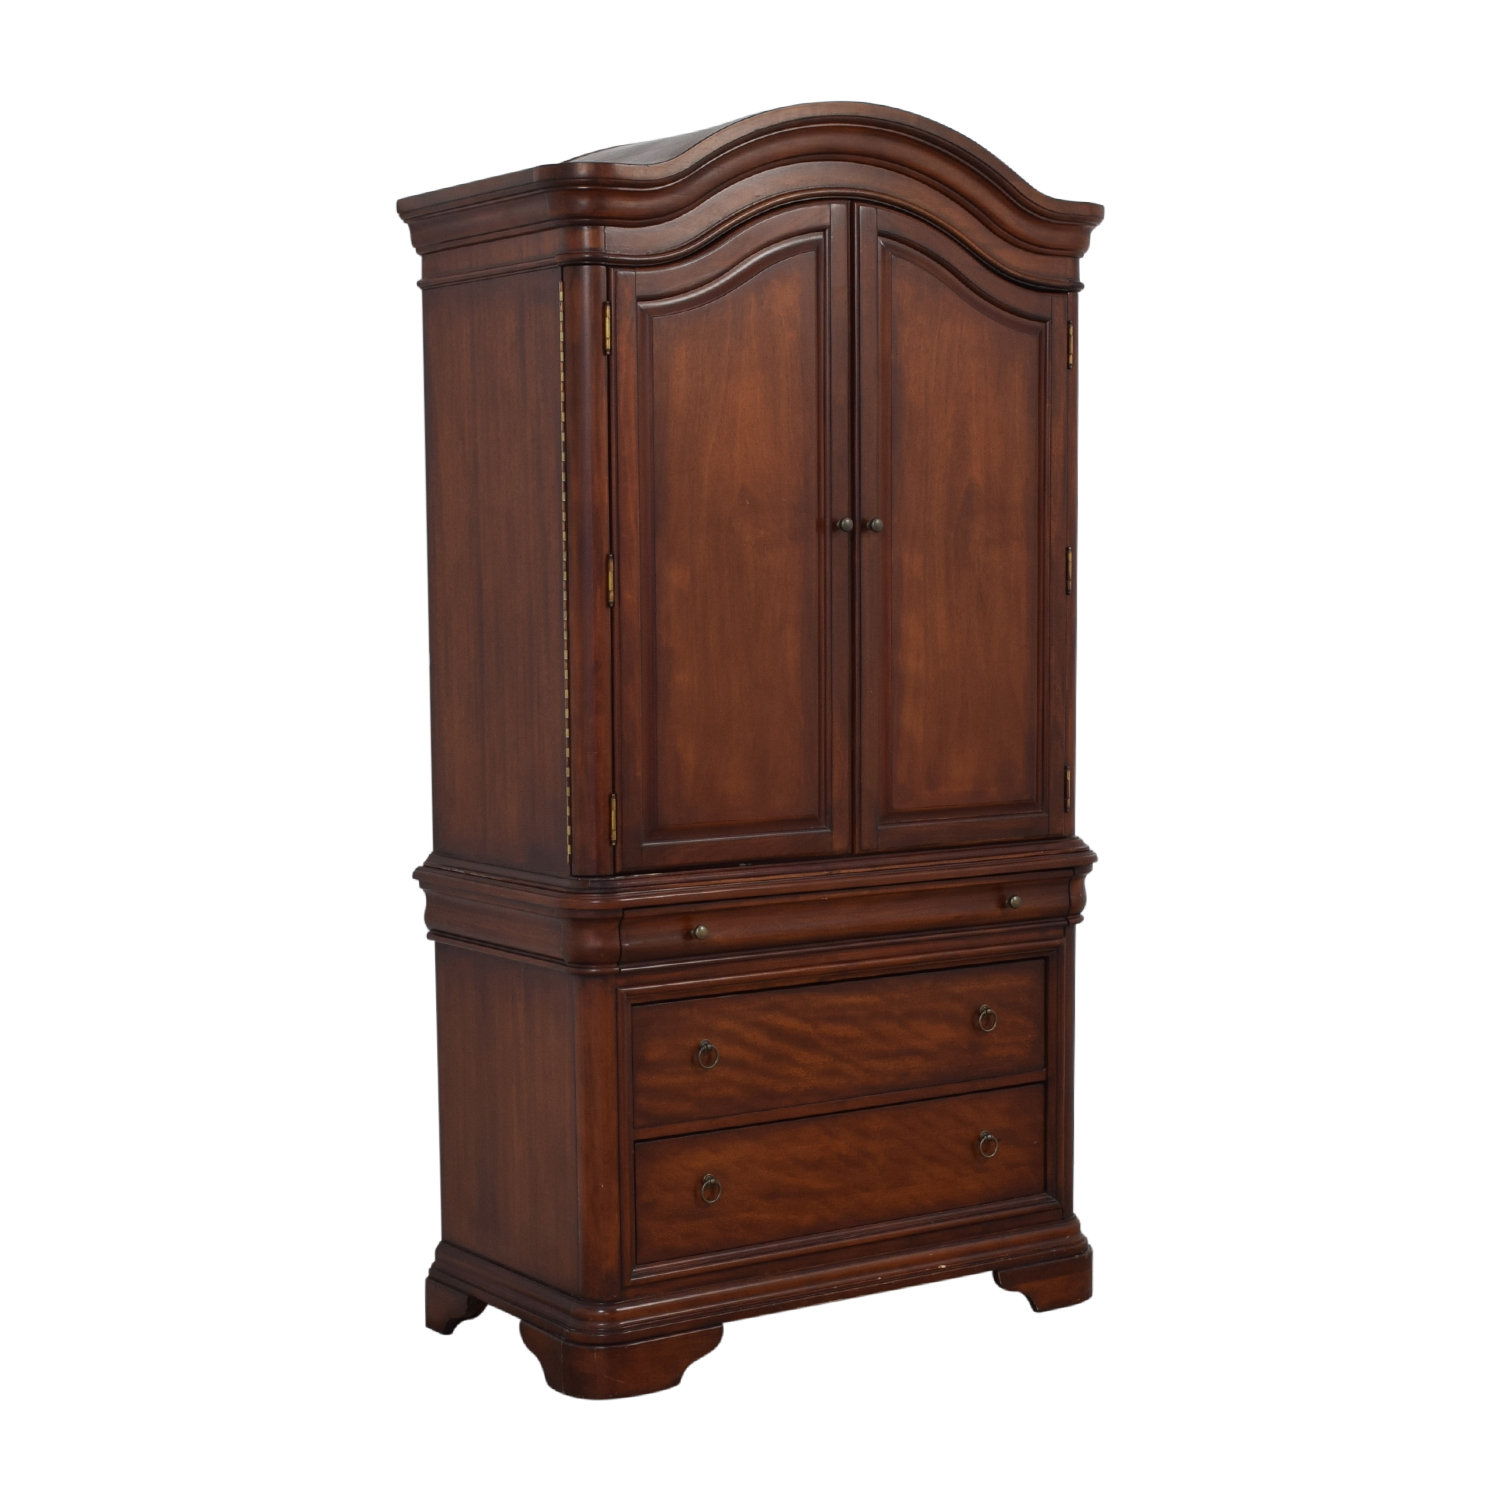 Macy's Macy's Four-Drawer Bordeaux TV Armoire used